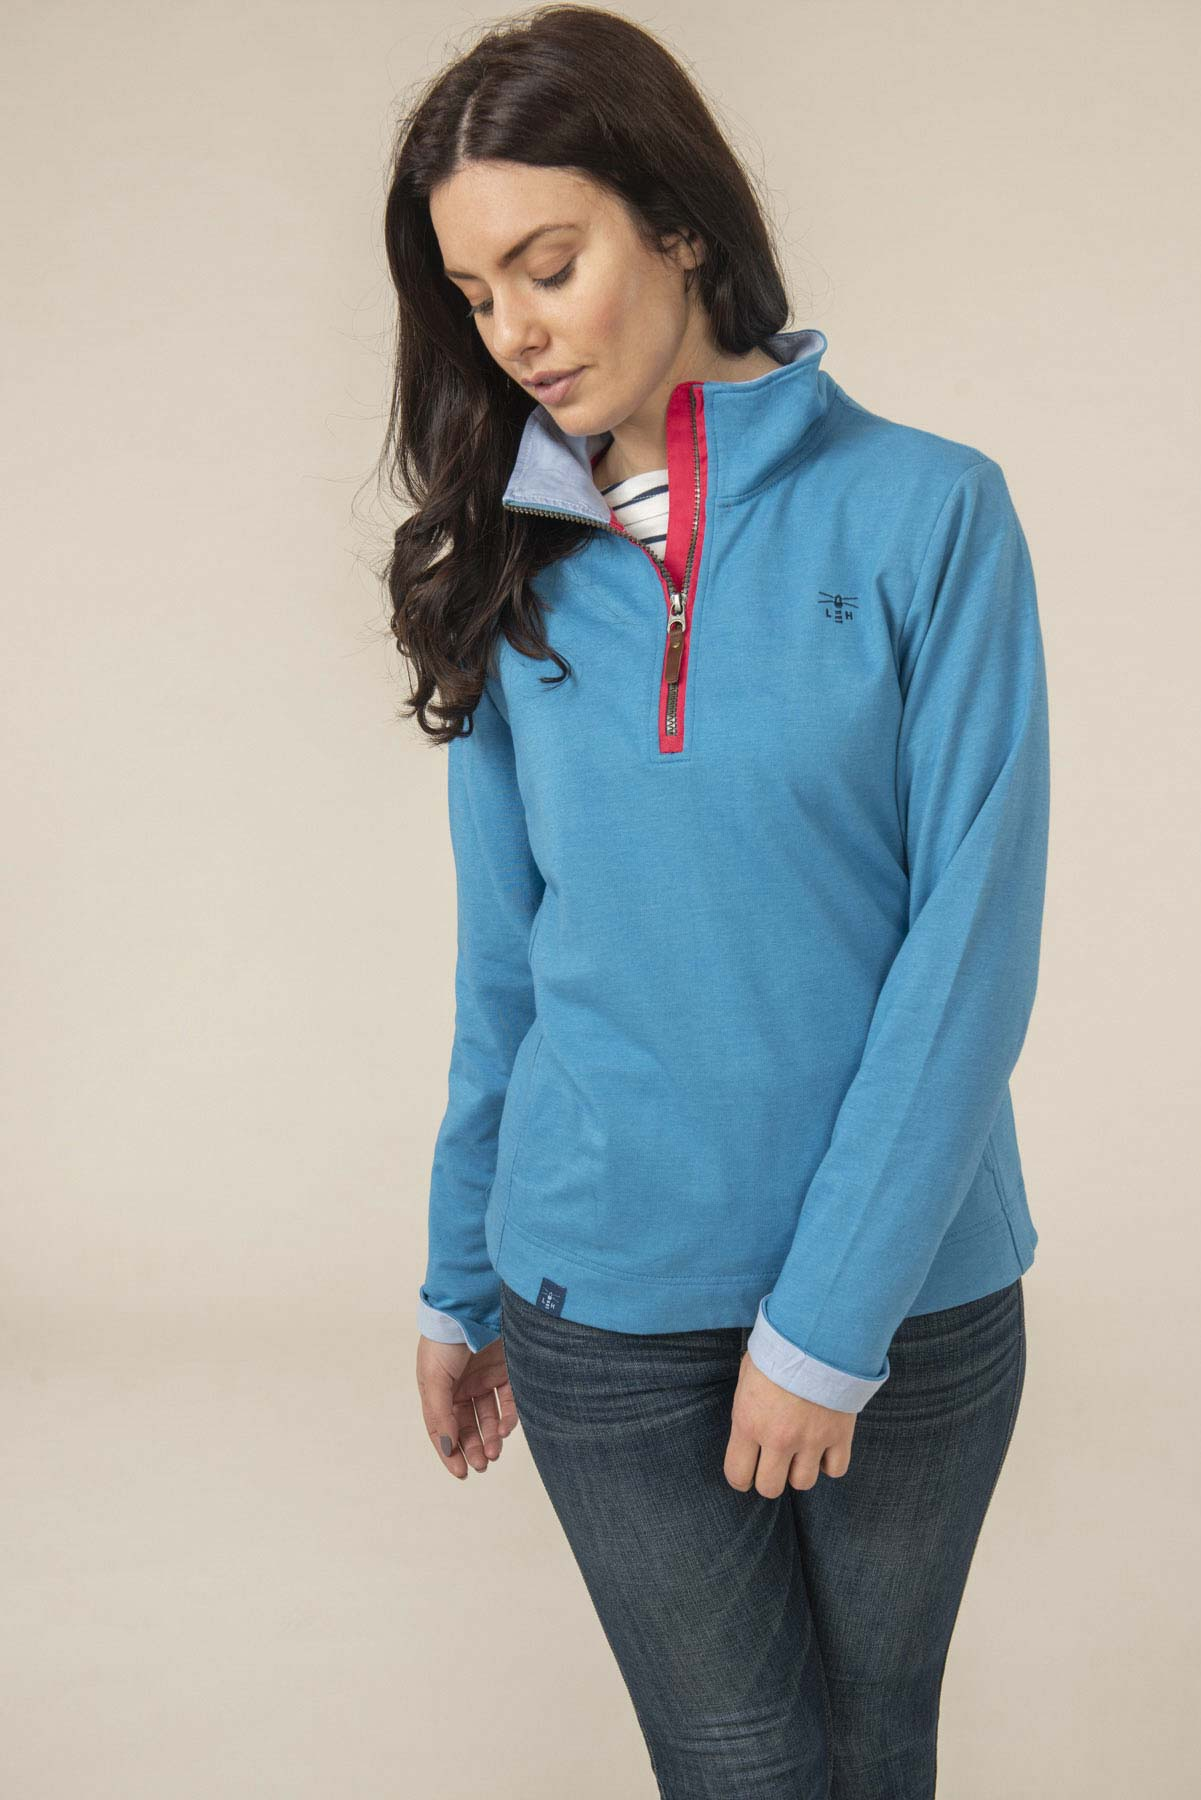 Shore Women's Blue Half Zip Sweatshirt